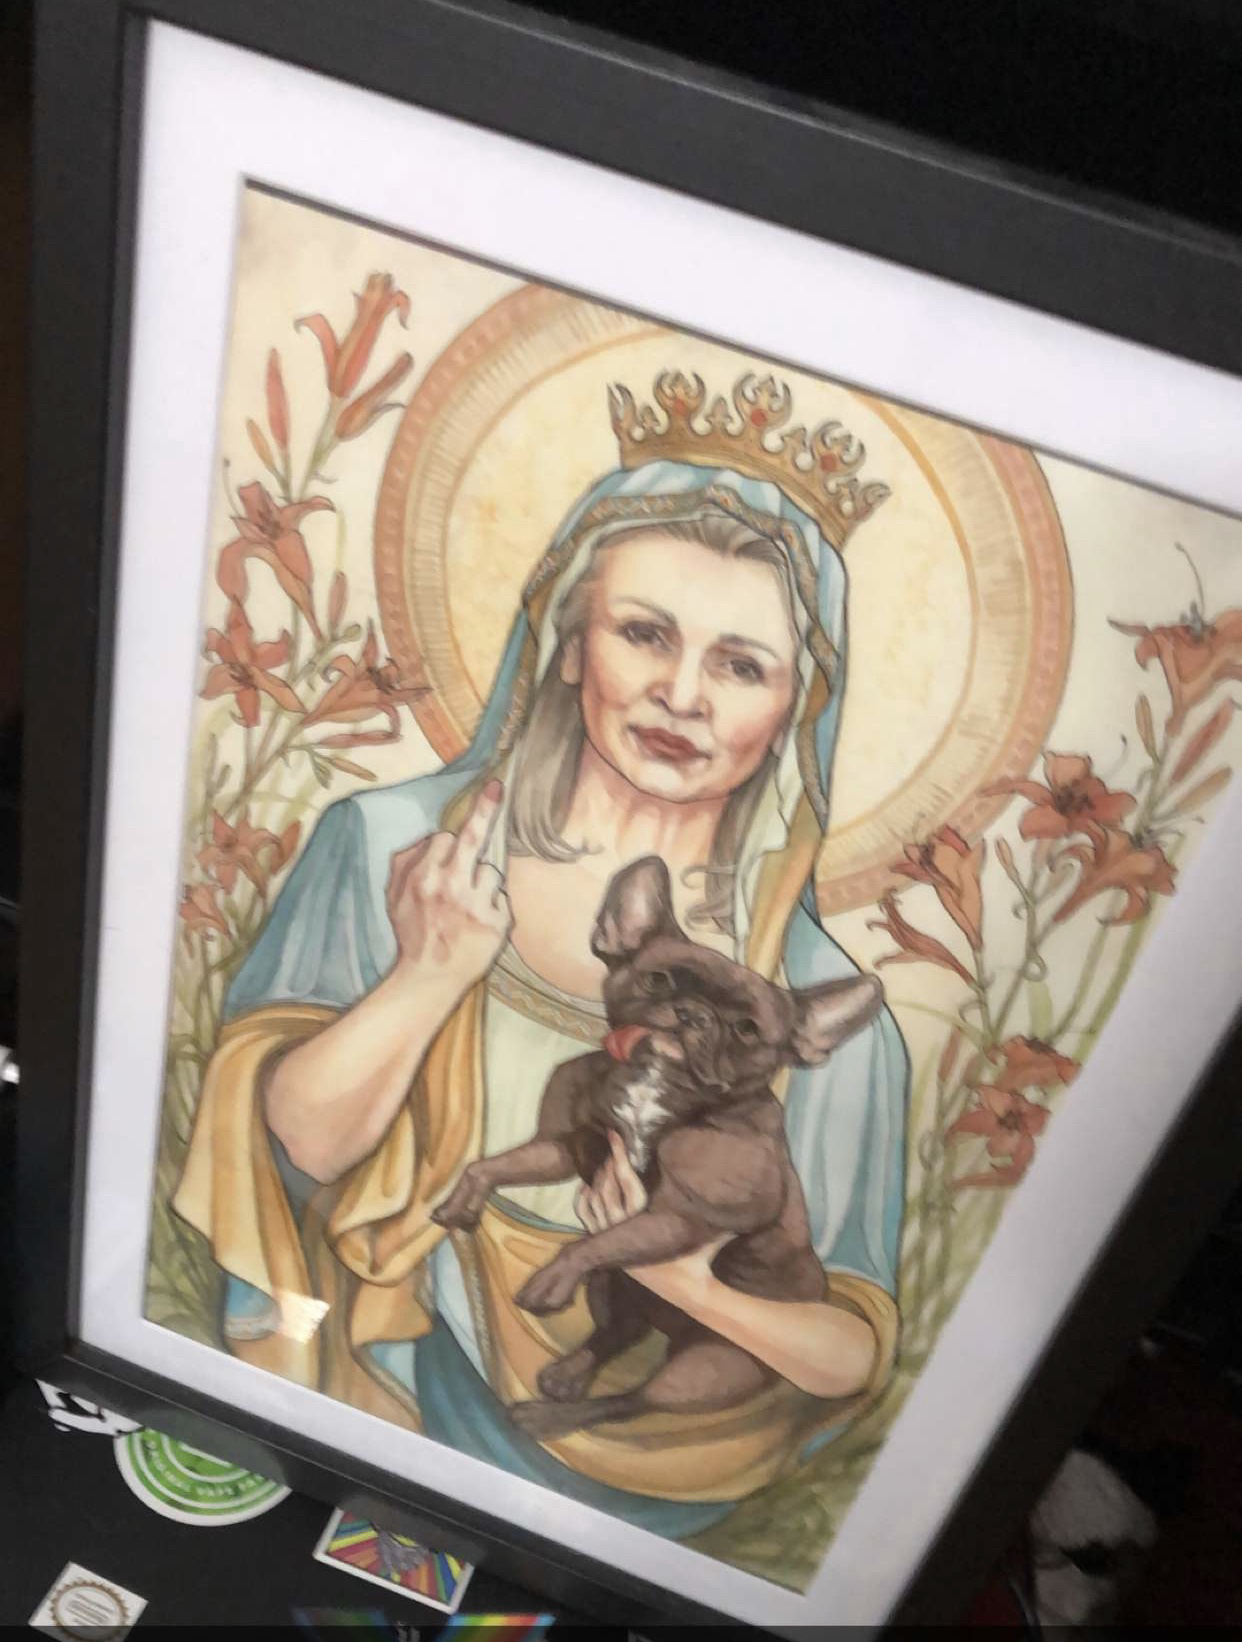 Probably the most epic Carrie Fisher portrait ever